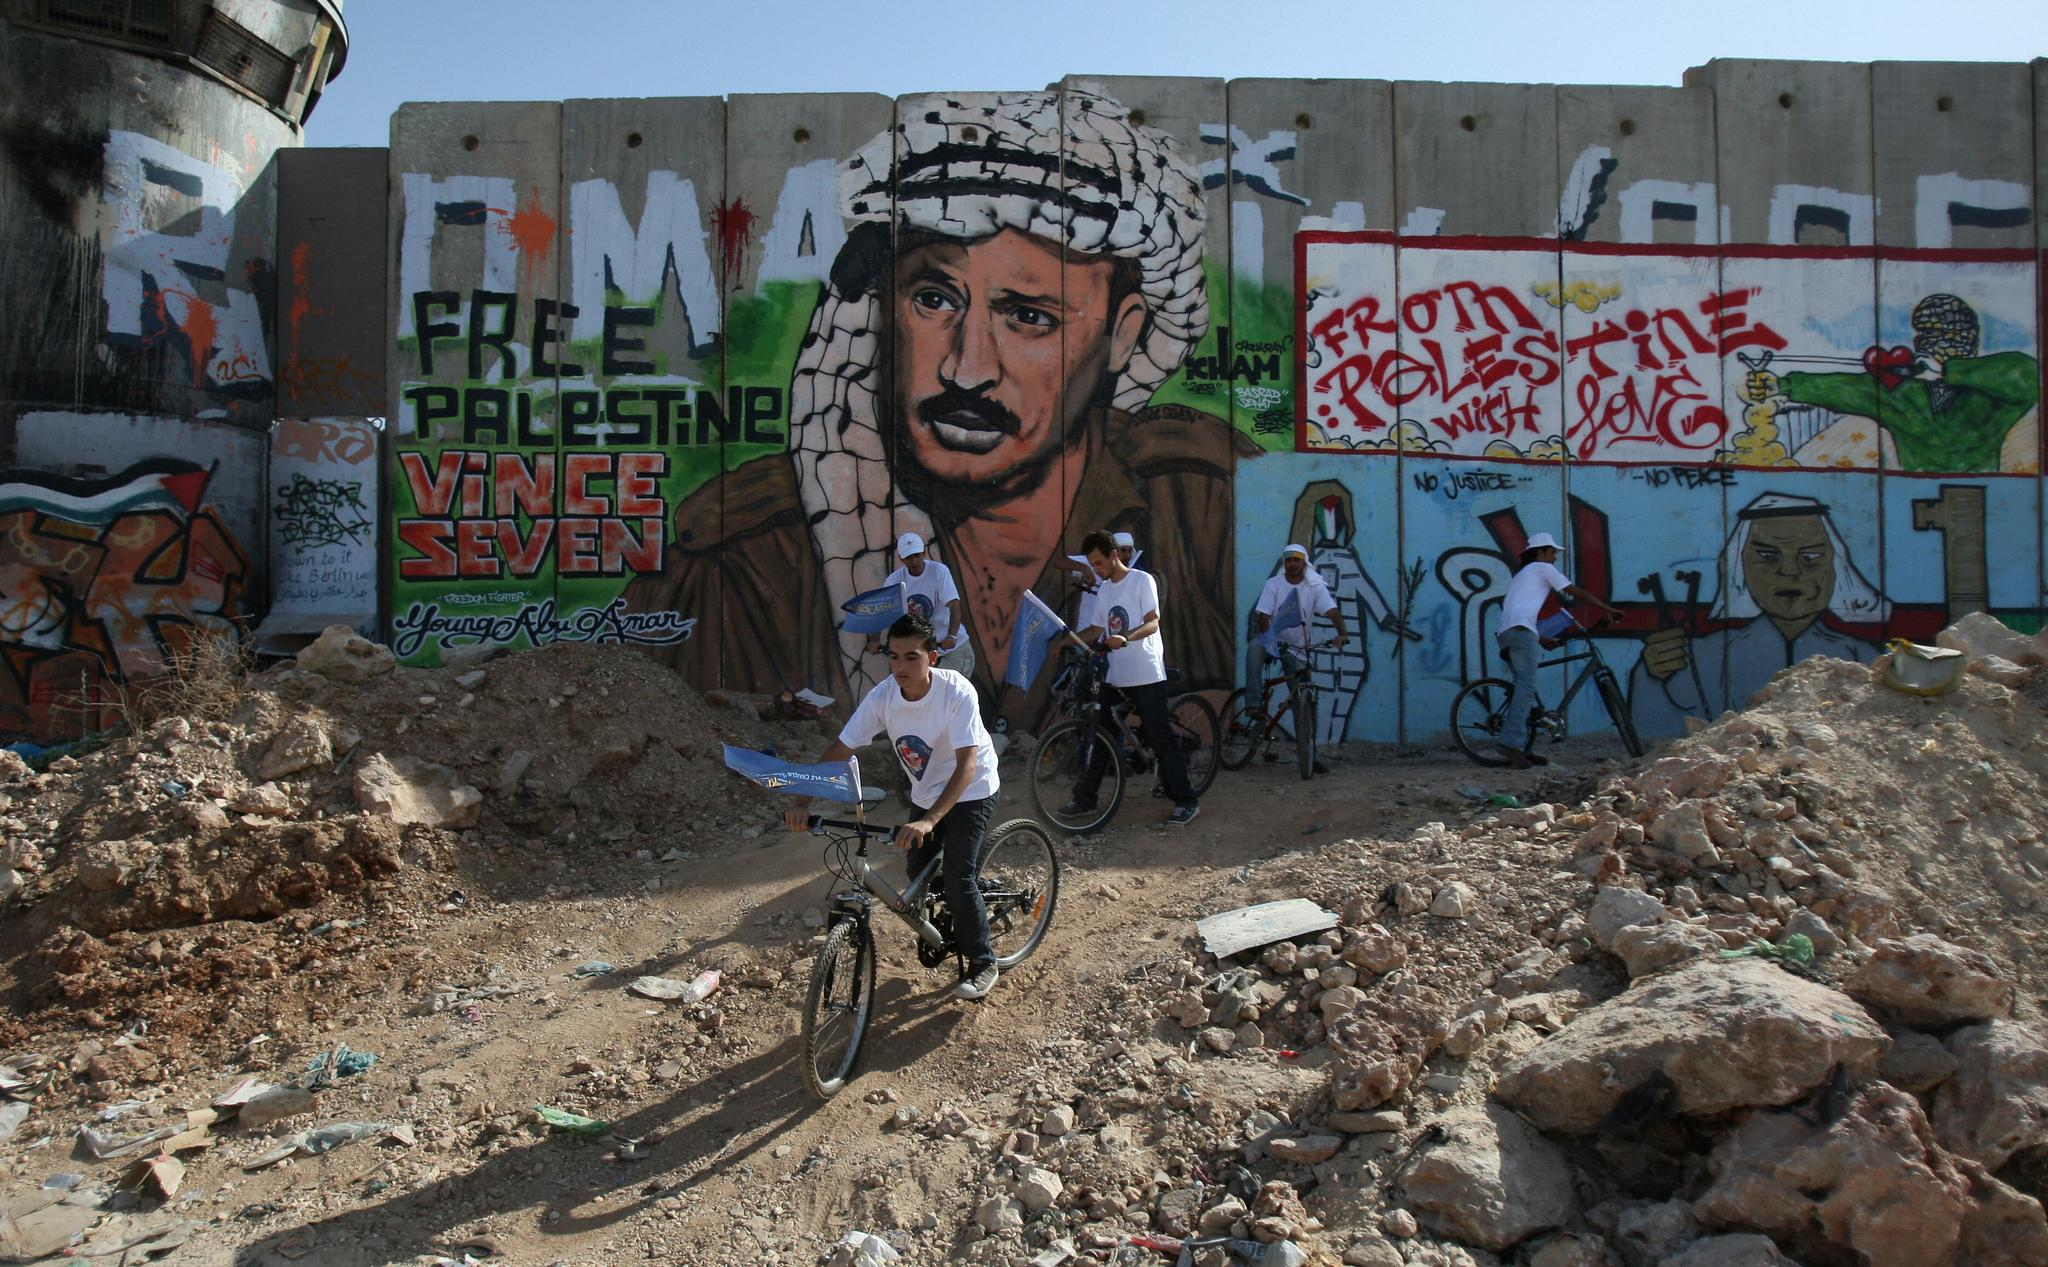 A group of Palestinian youths cycle past a section of Israel's separation barrier to promote a cultural festival in the West Bank city of Ramallah and as a protest against the wall on June 30, 2009 in the Qalandia checkpoint between northern Jerusalem and Ramallah.